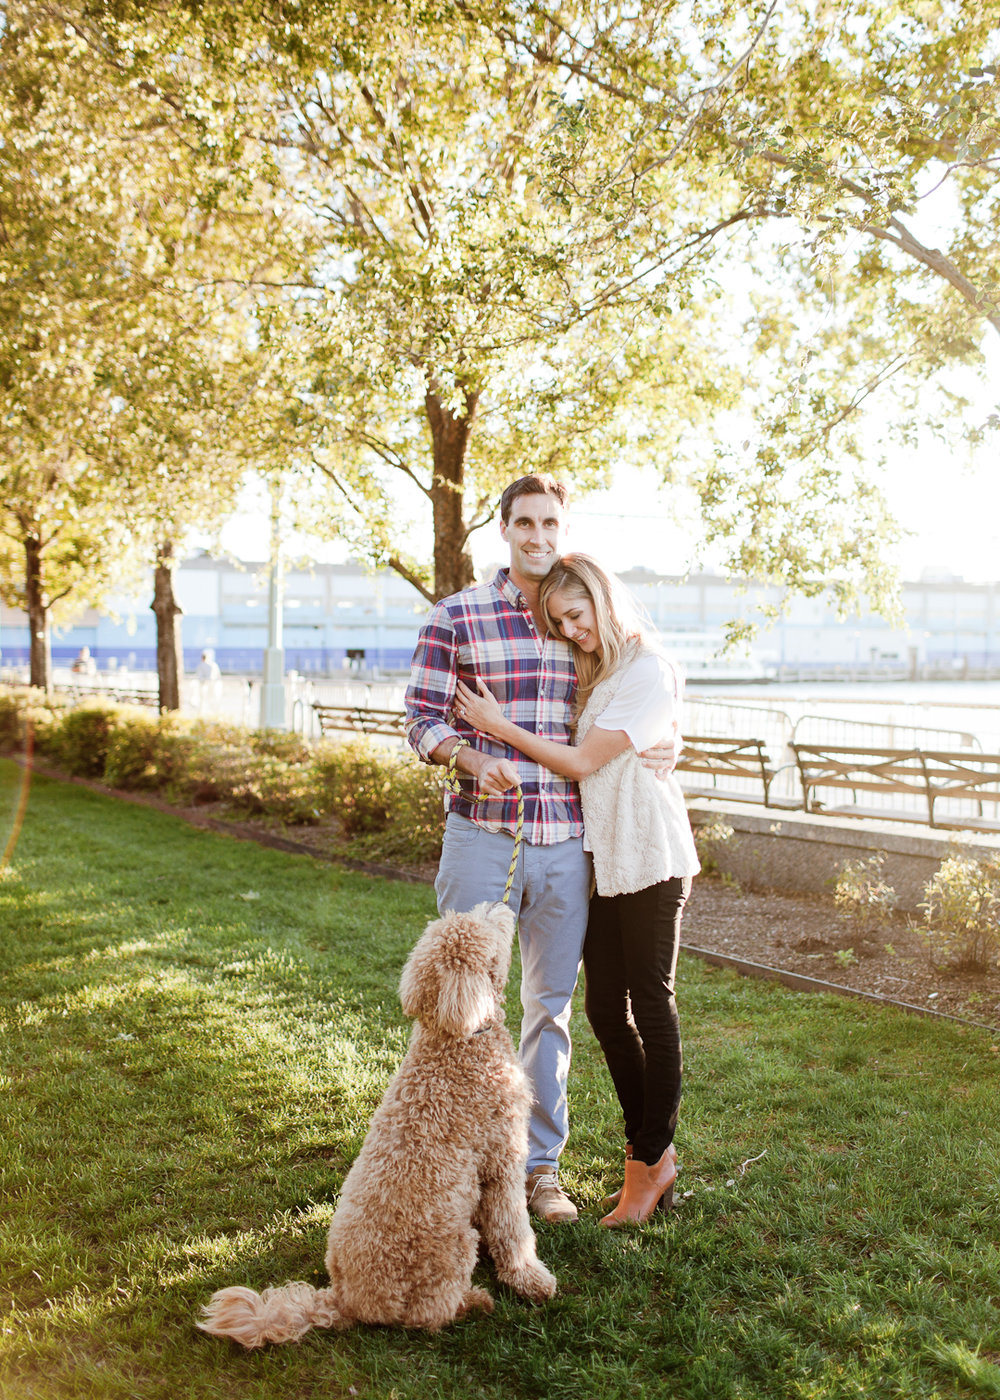 Melissa Kruse Photography - Daniece & Chris West Village Engagement Photos-134.jpg